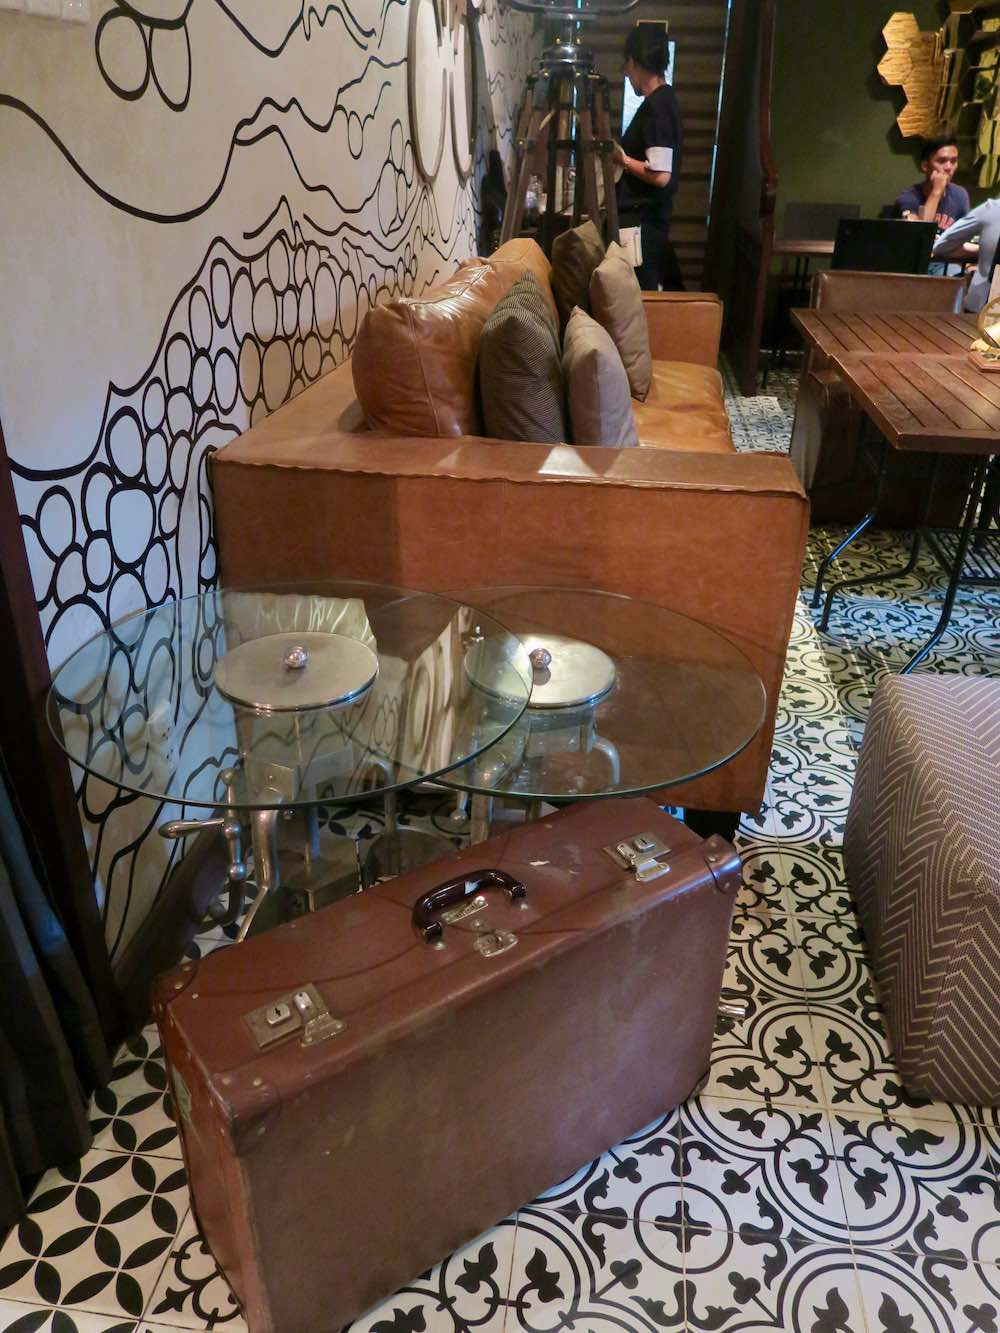 Suitcases as decor in Cafe Runam Saigon |curlytraveller.com